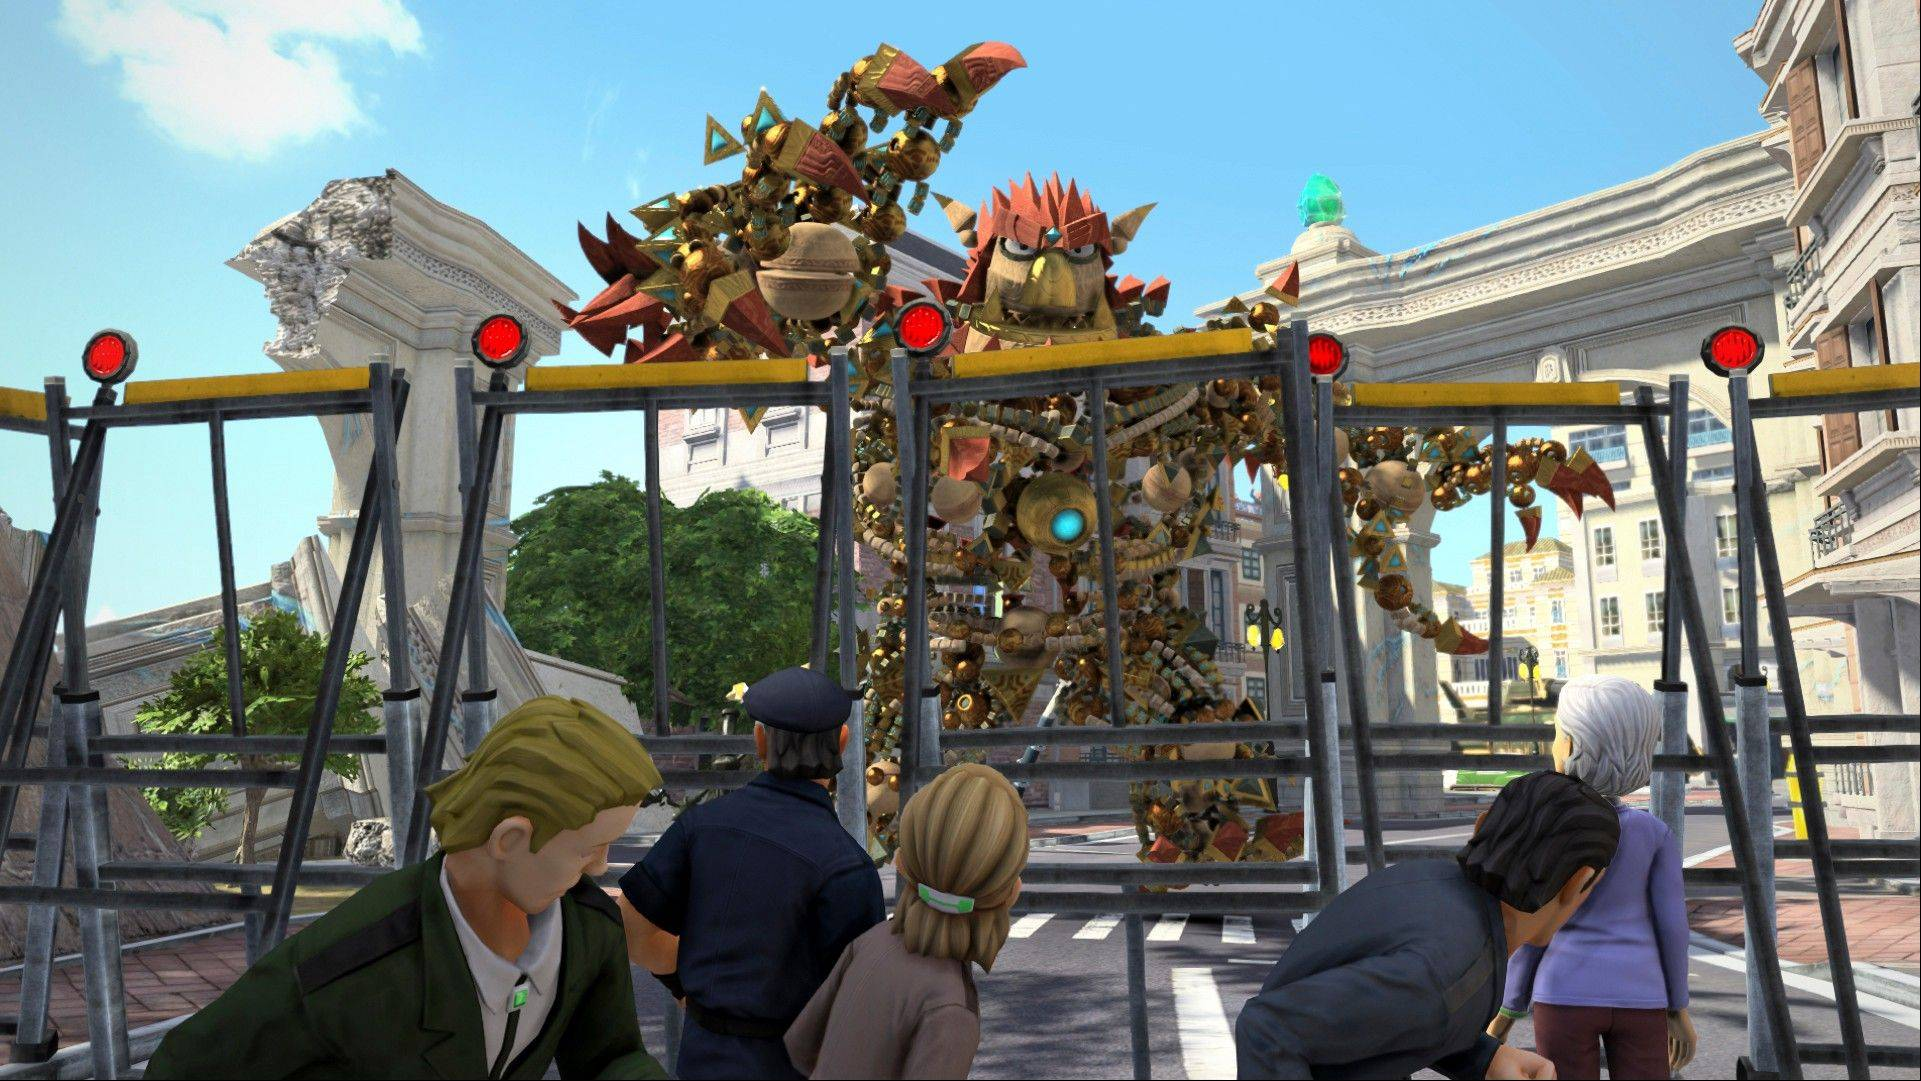 �Knack� was created to be the perfect beast to show off the spectacularly vamped up visual powers of the PlayStation 4 game console. The hero of the game, also called �Knack,� is made up of 5,000 parts that cluster together and hang in the air to shape its ever-metamorphosing form.